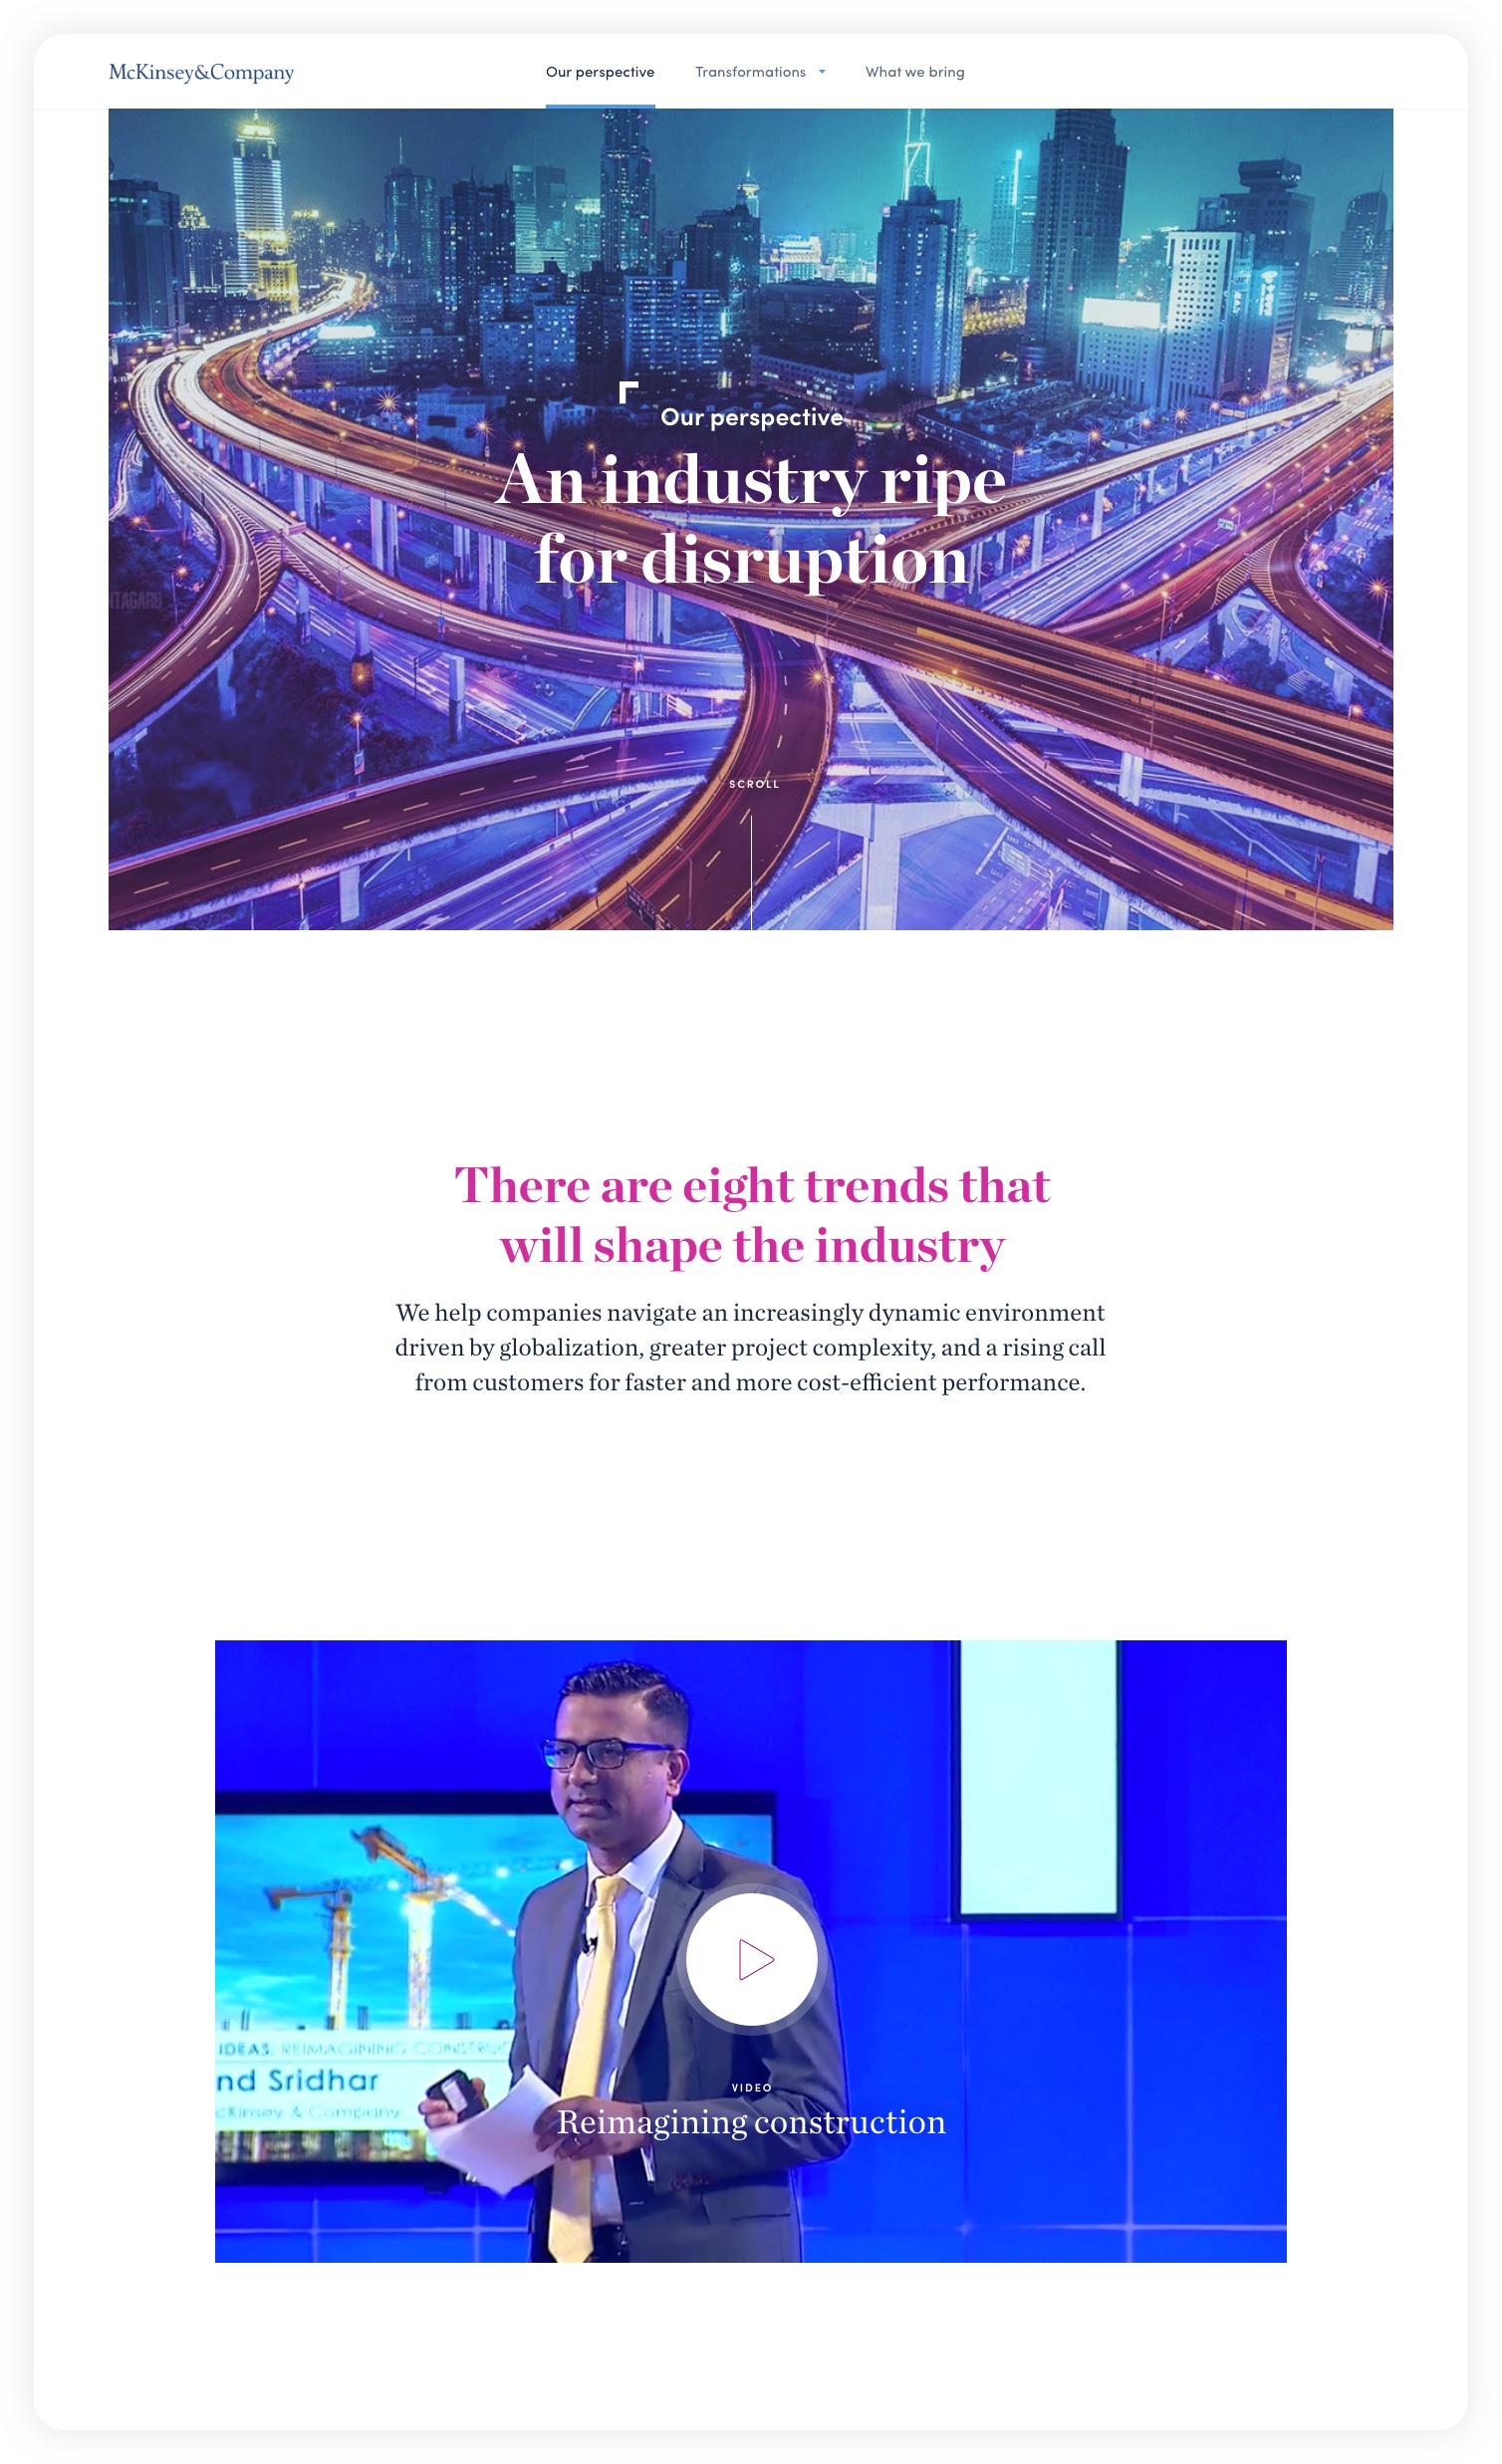 Design for header of our perspective: An industry ripe for disruption – McKinsey C&E experience website: Navigating complexity